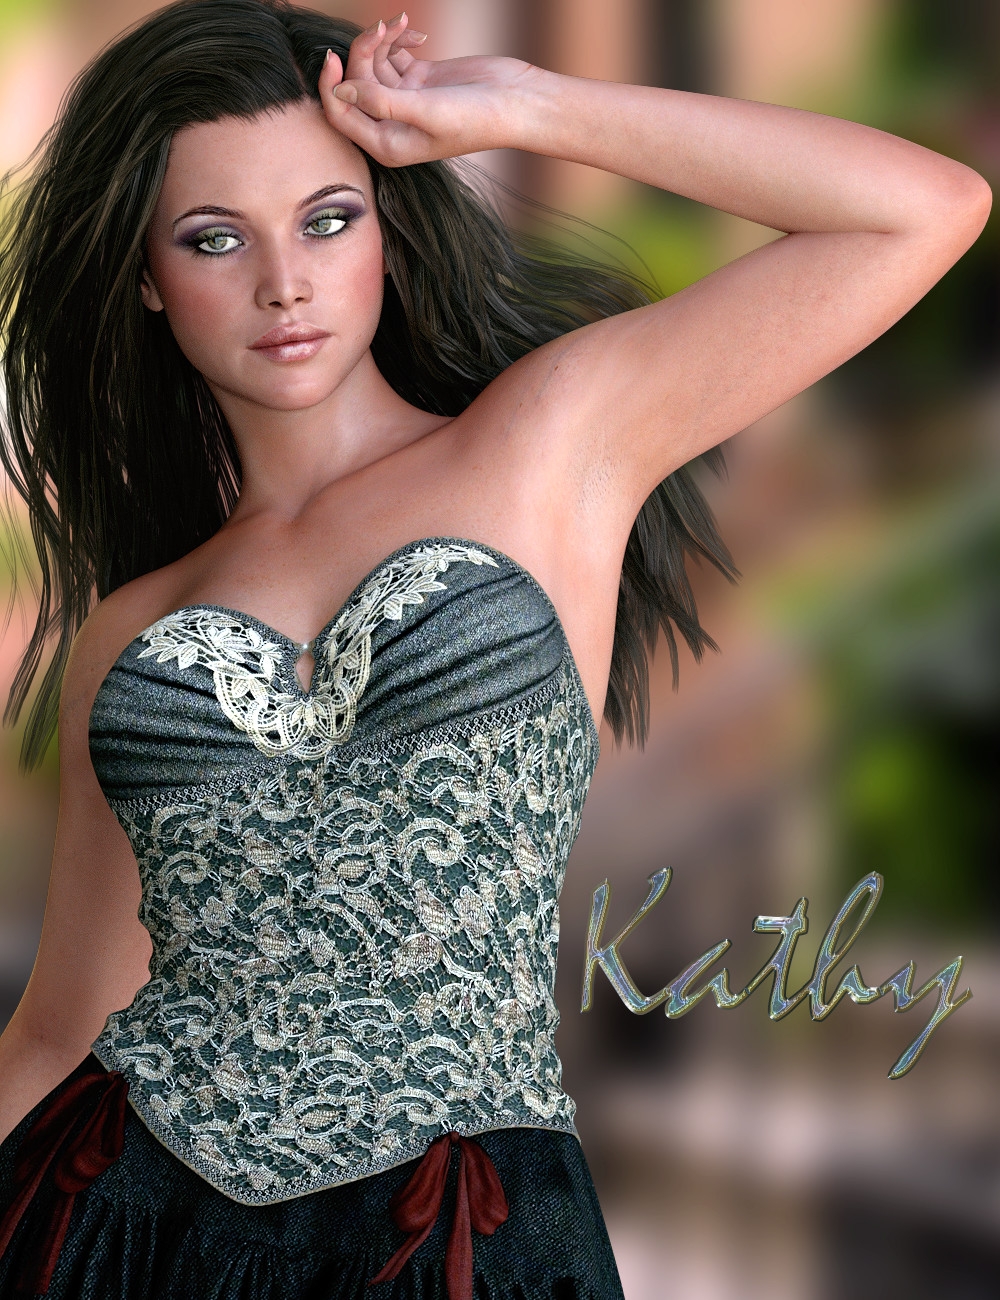 Kathy for Genesis 3 Female(s) by: Virtual_World, 3D Models by Daz 3D